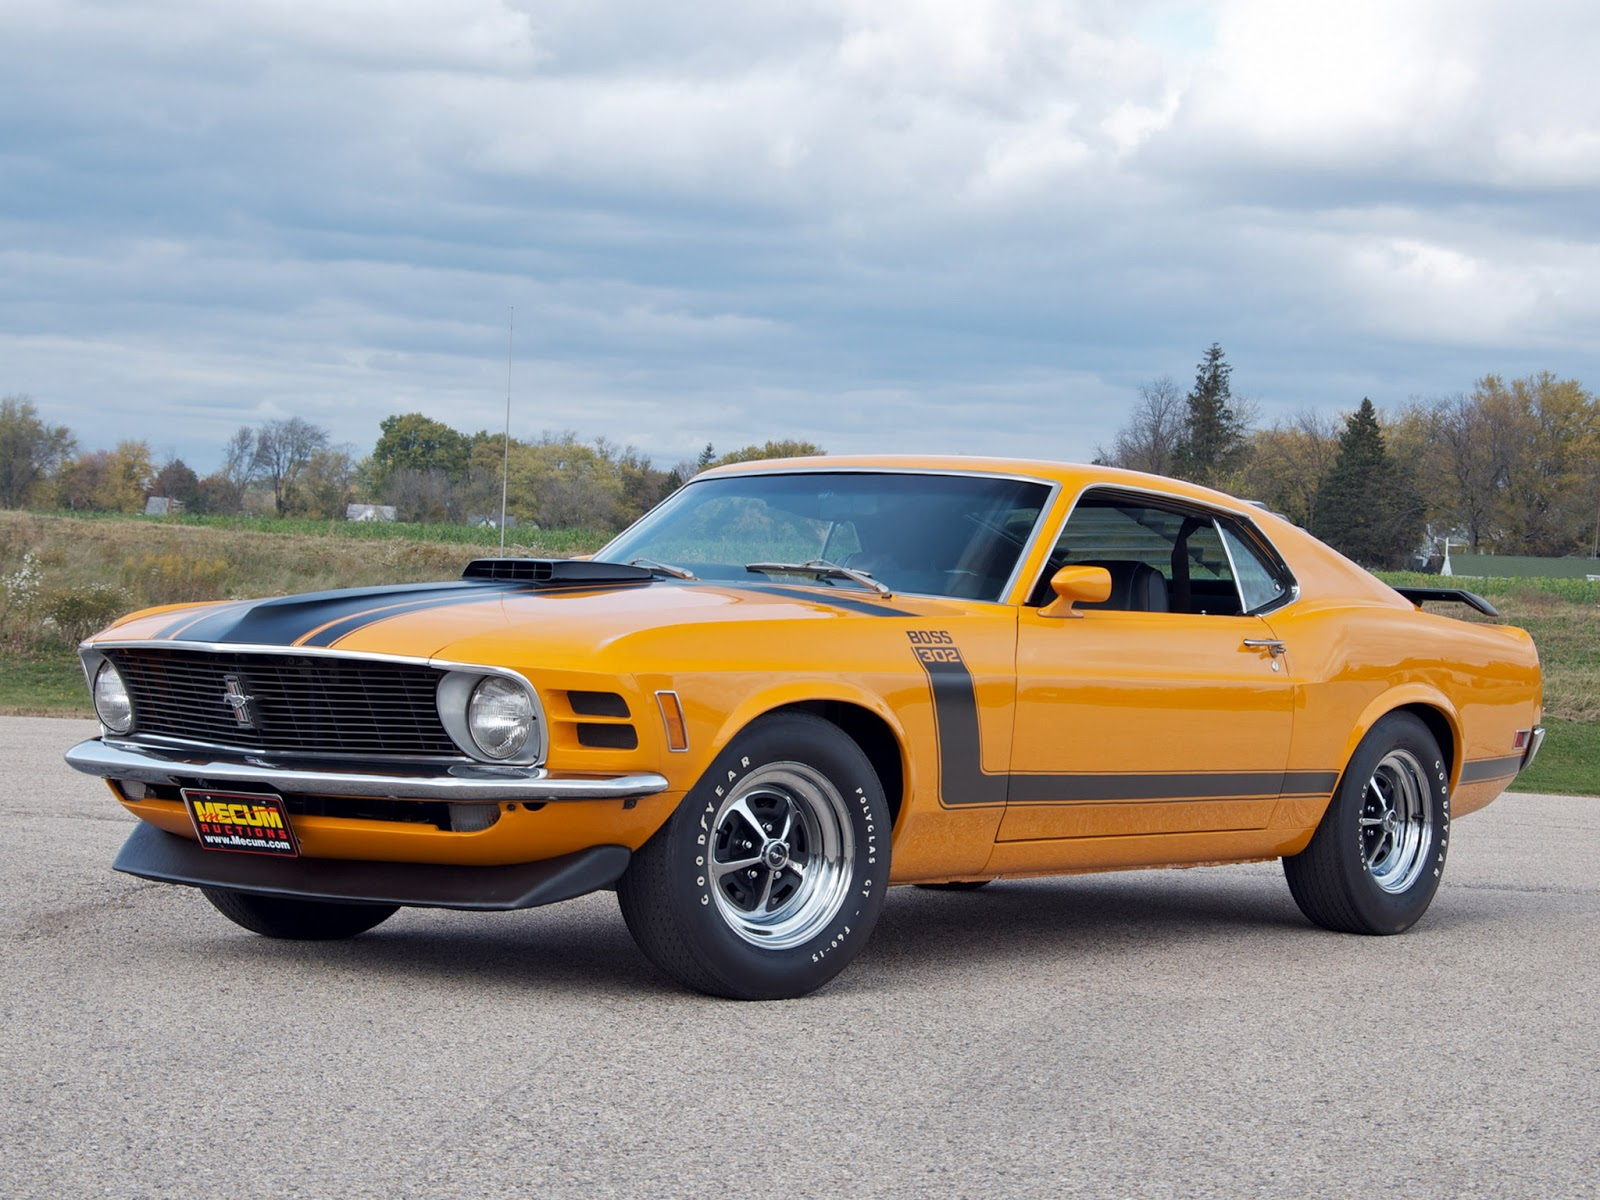 1970 Ford Mustang Boss 302 Profile and history